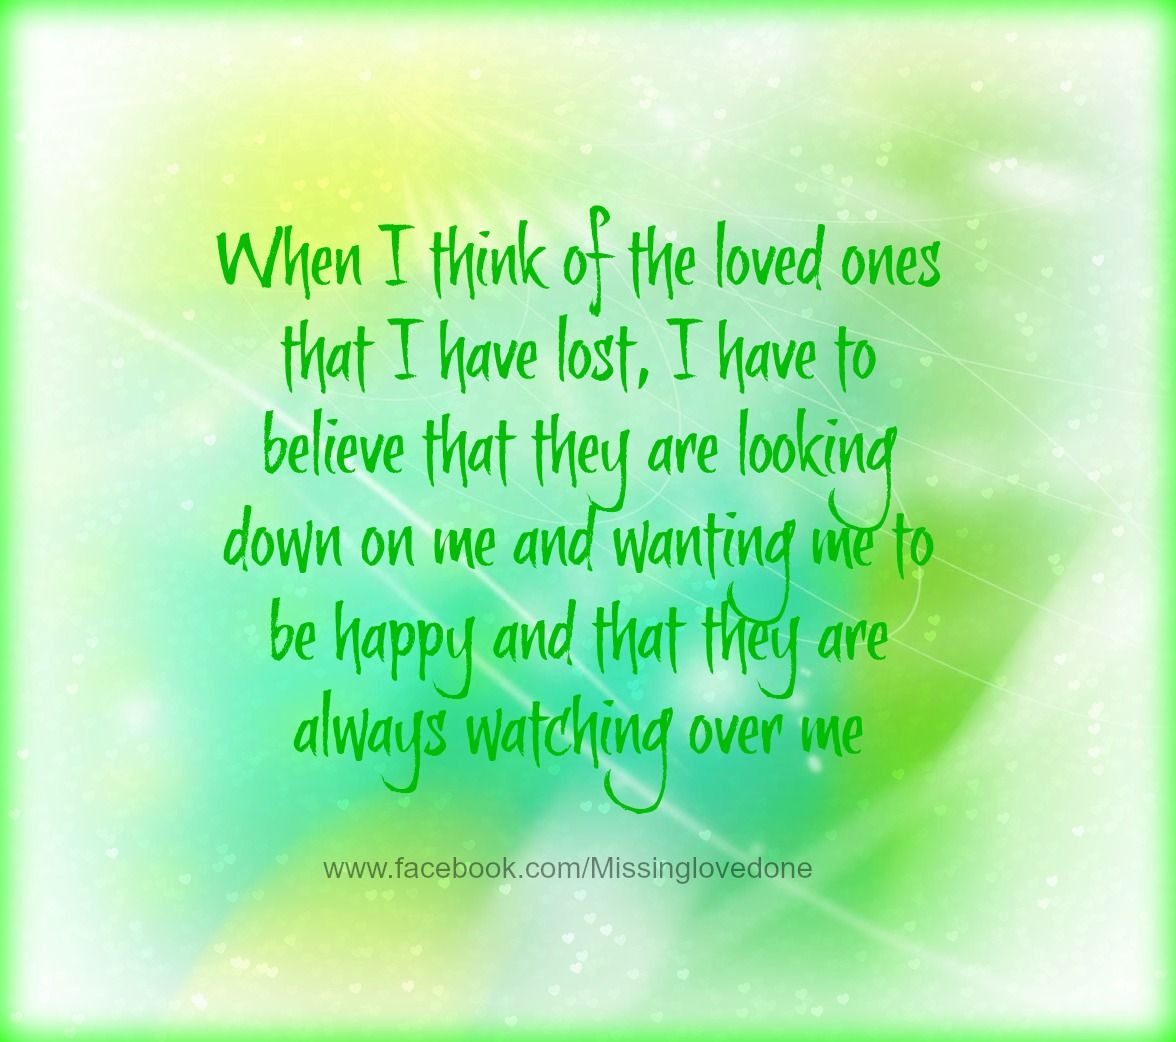 Inspirational Quotes Death Loved One Pinlori On Griefdeath Quotes  Pinterest  Grief Death